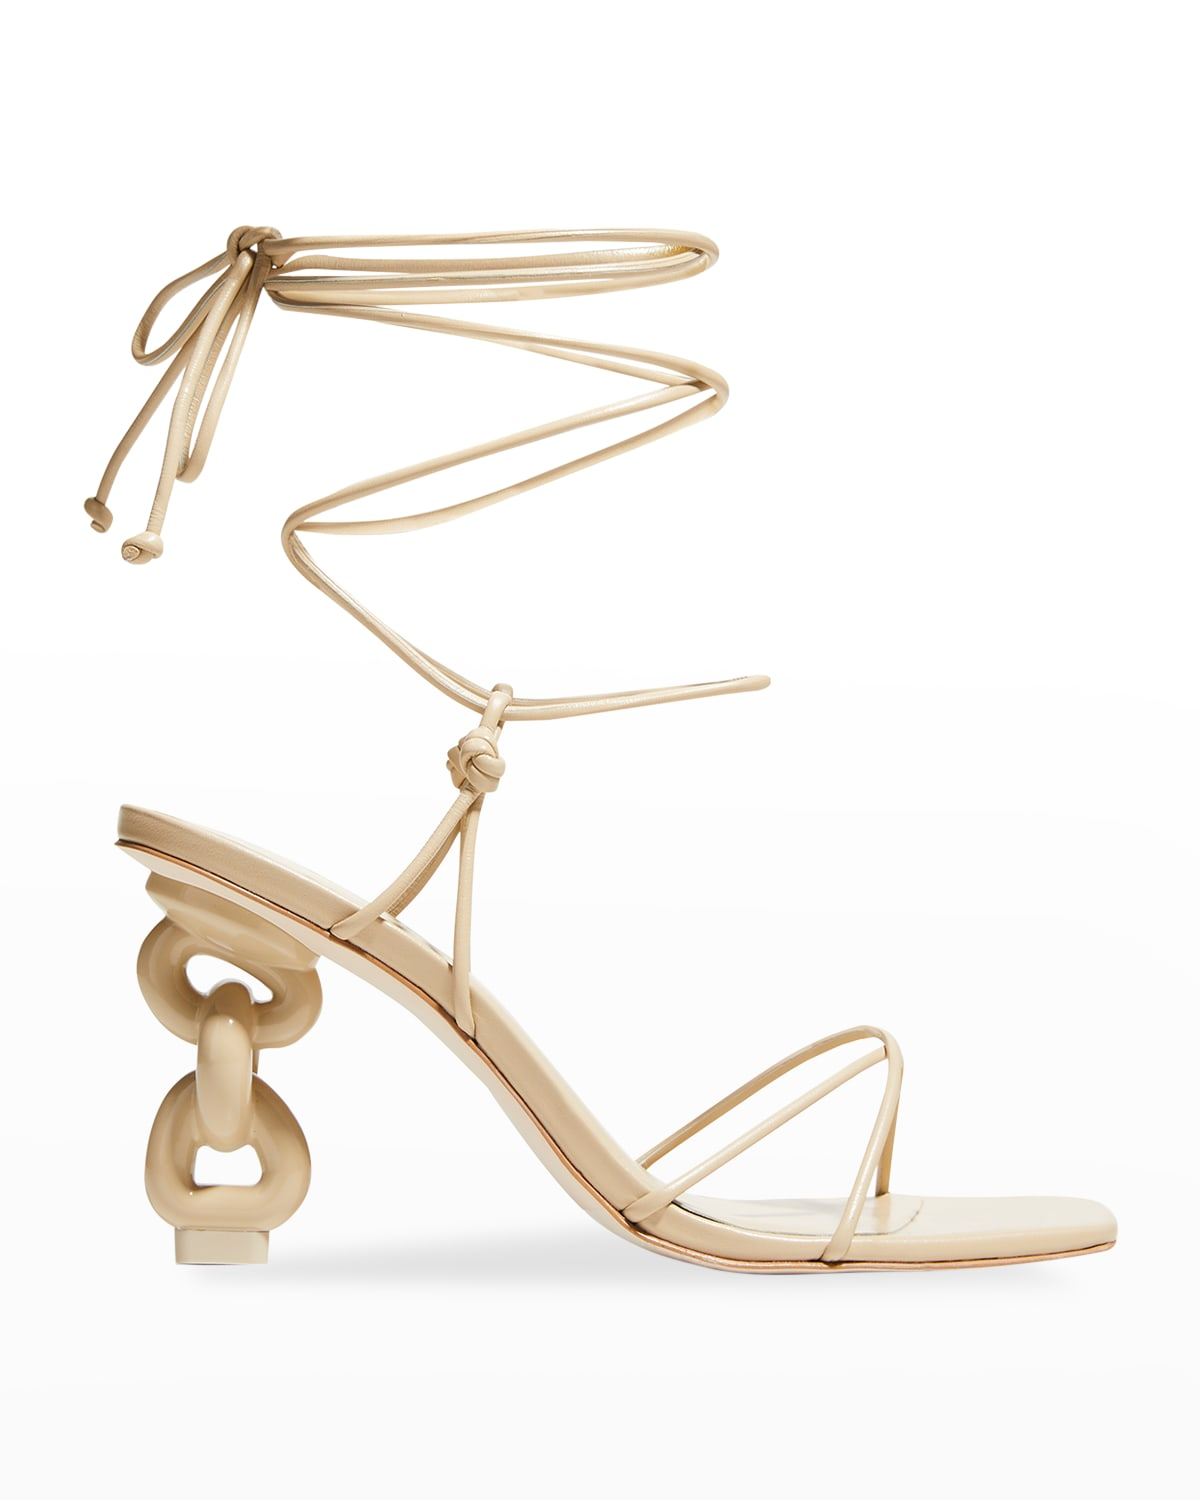 Zadie Leather Ankle-Wrap High-Heel Sandals